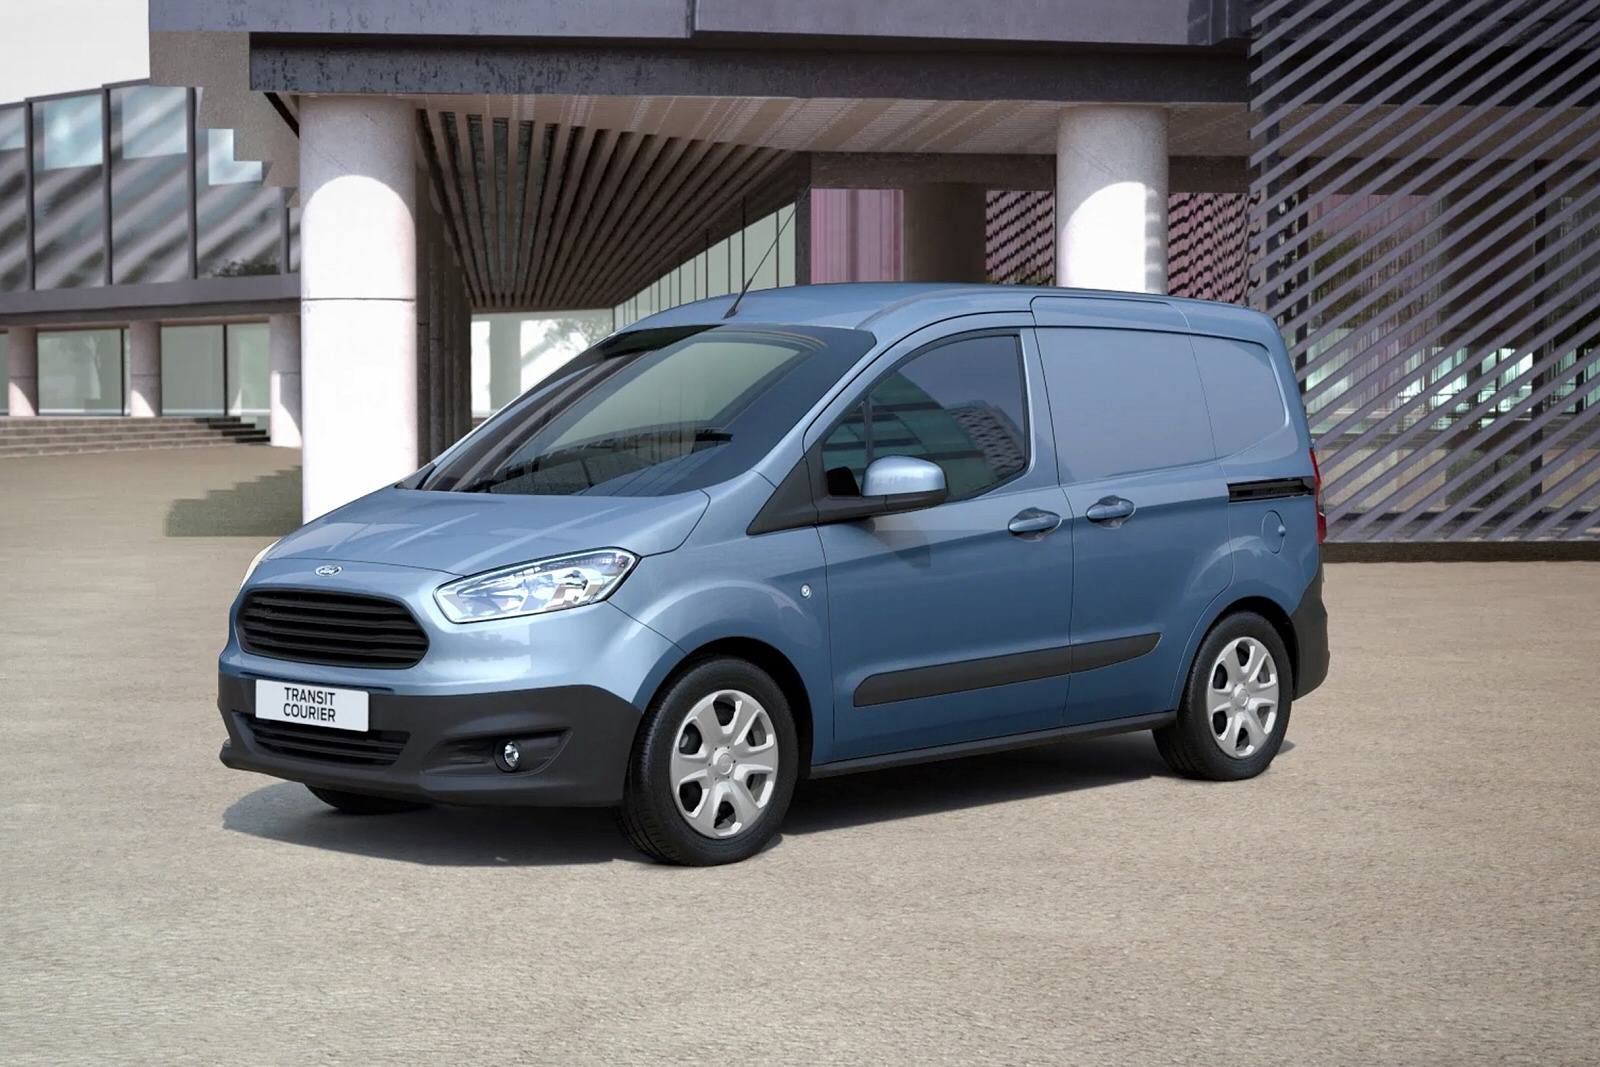 new ford transit courier petrol 1 0 ecoboost van for sale one stop vans. Black Bedroom Furniture Sets. Home Design Ideas